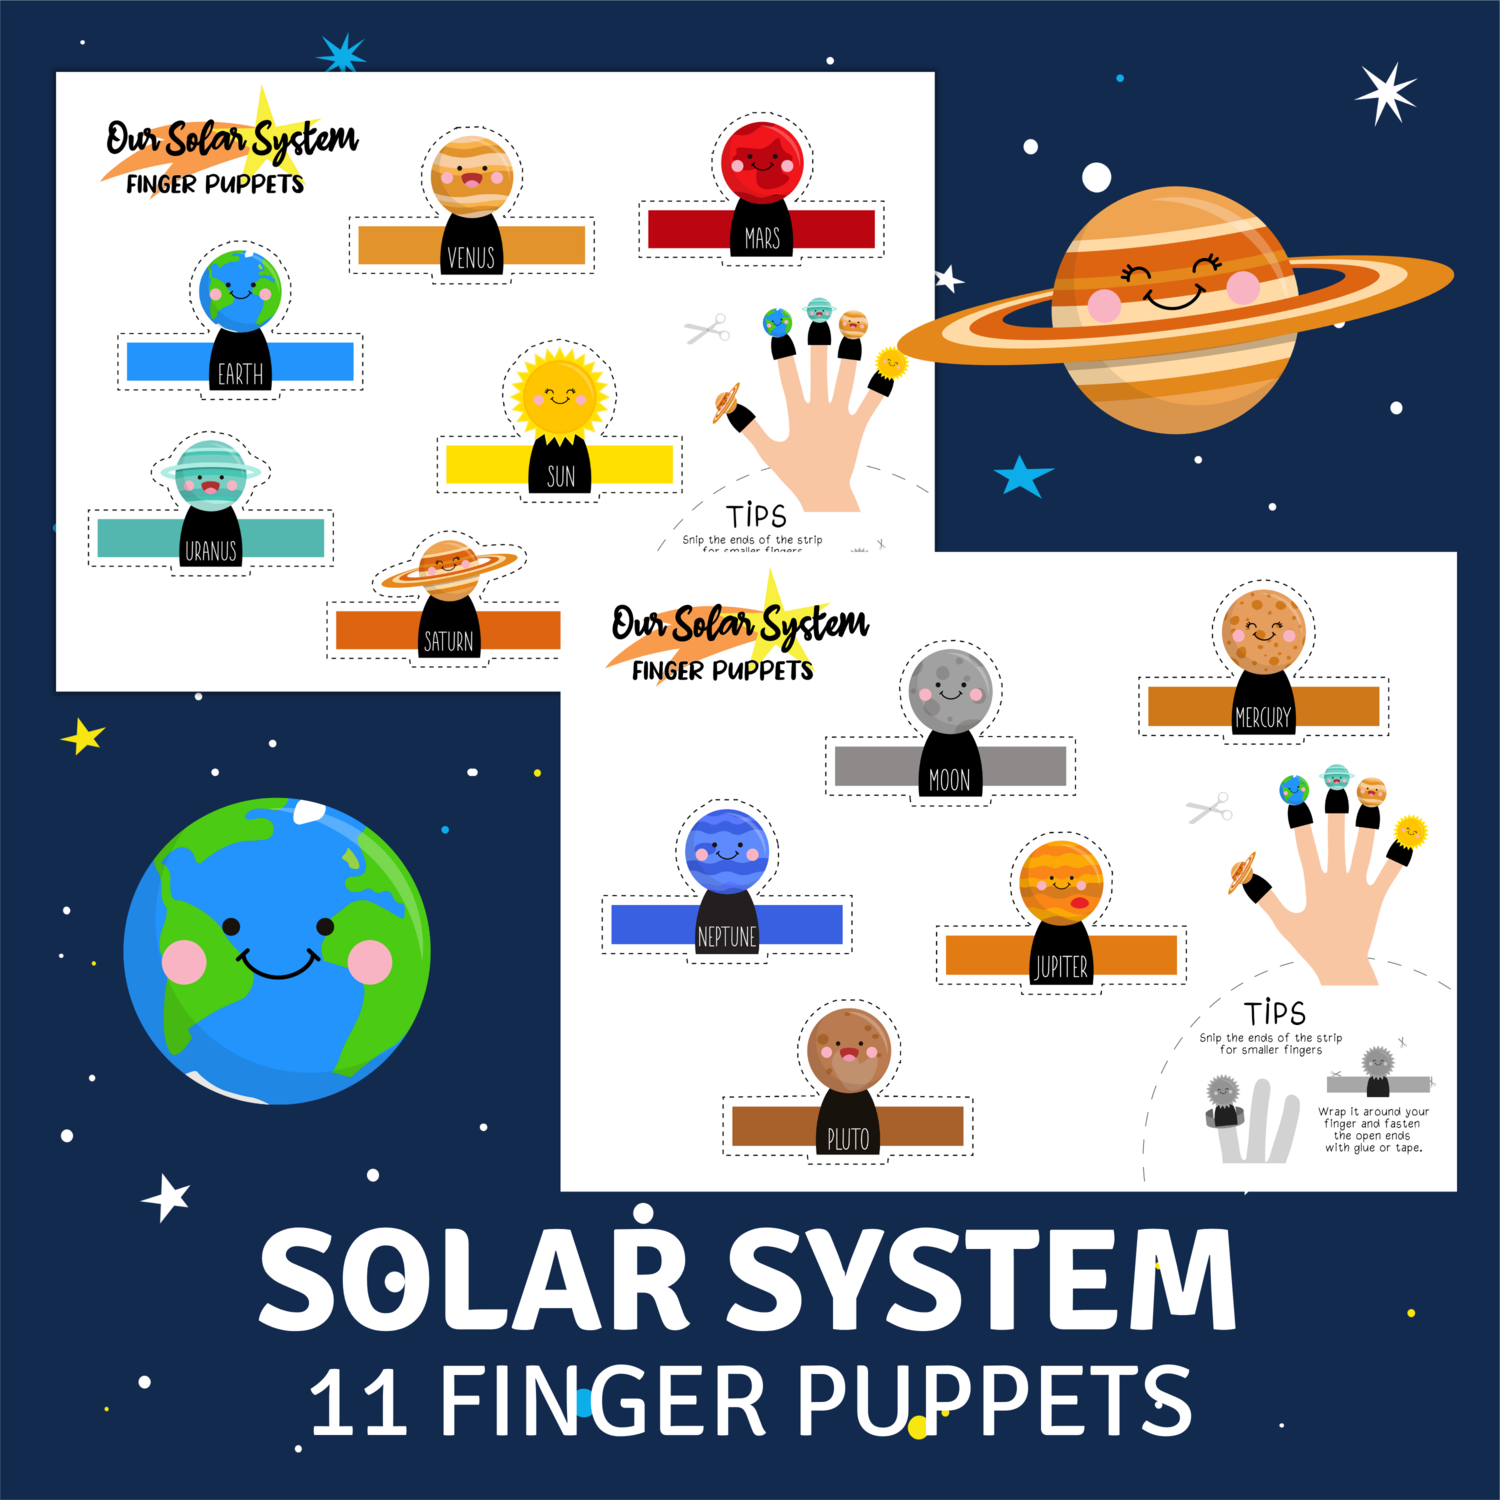 Free Printable Finger Puppets - Our Solar System